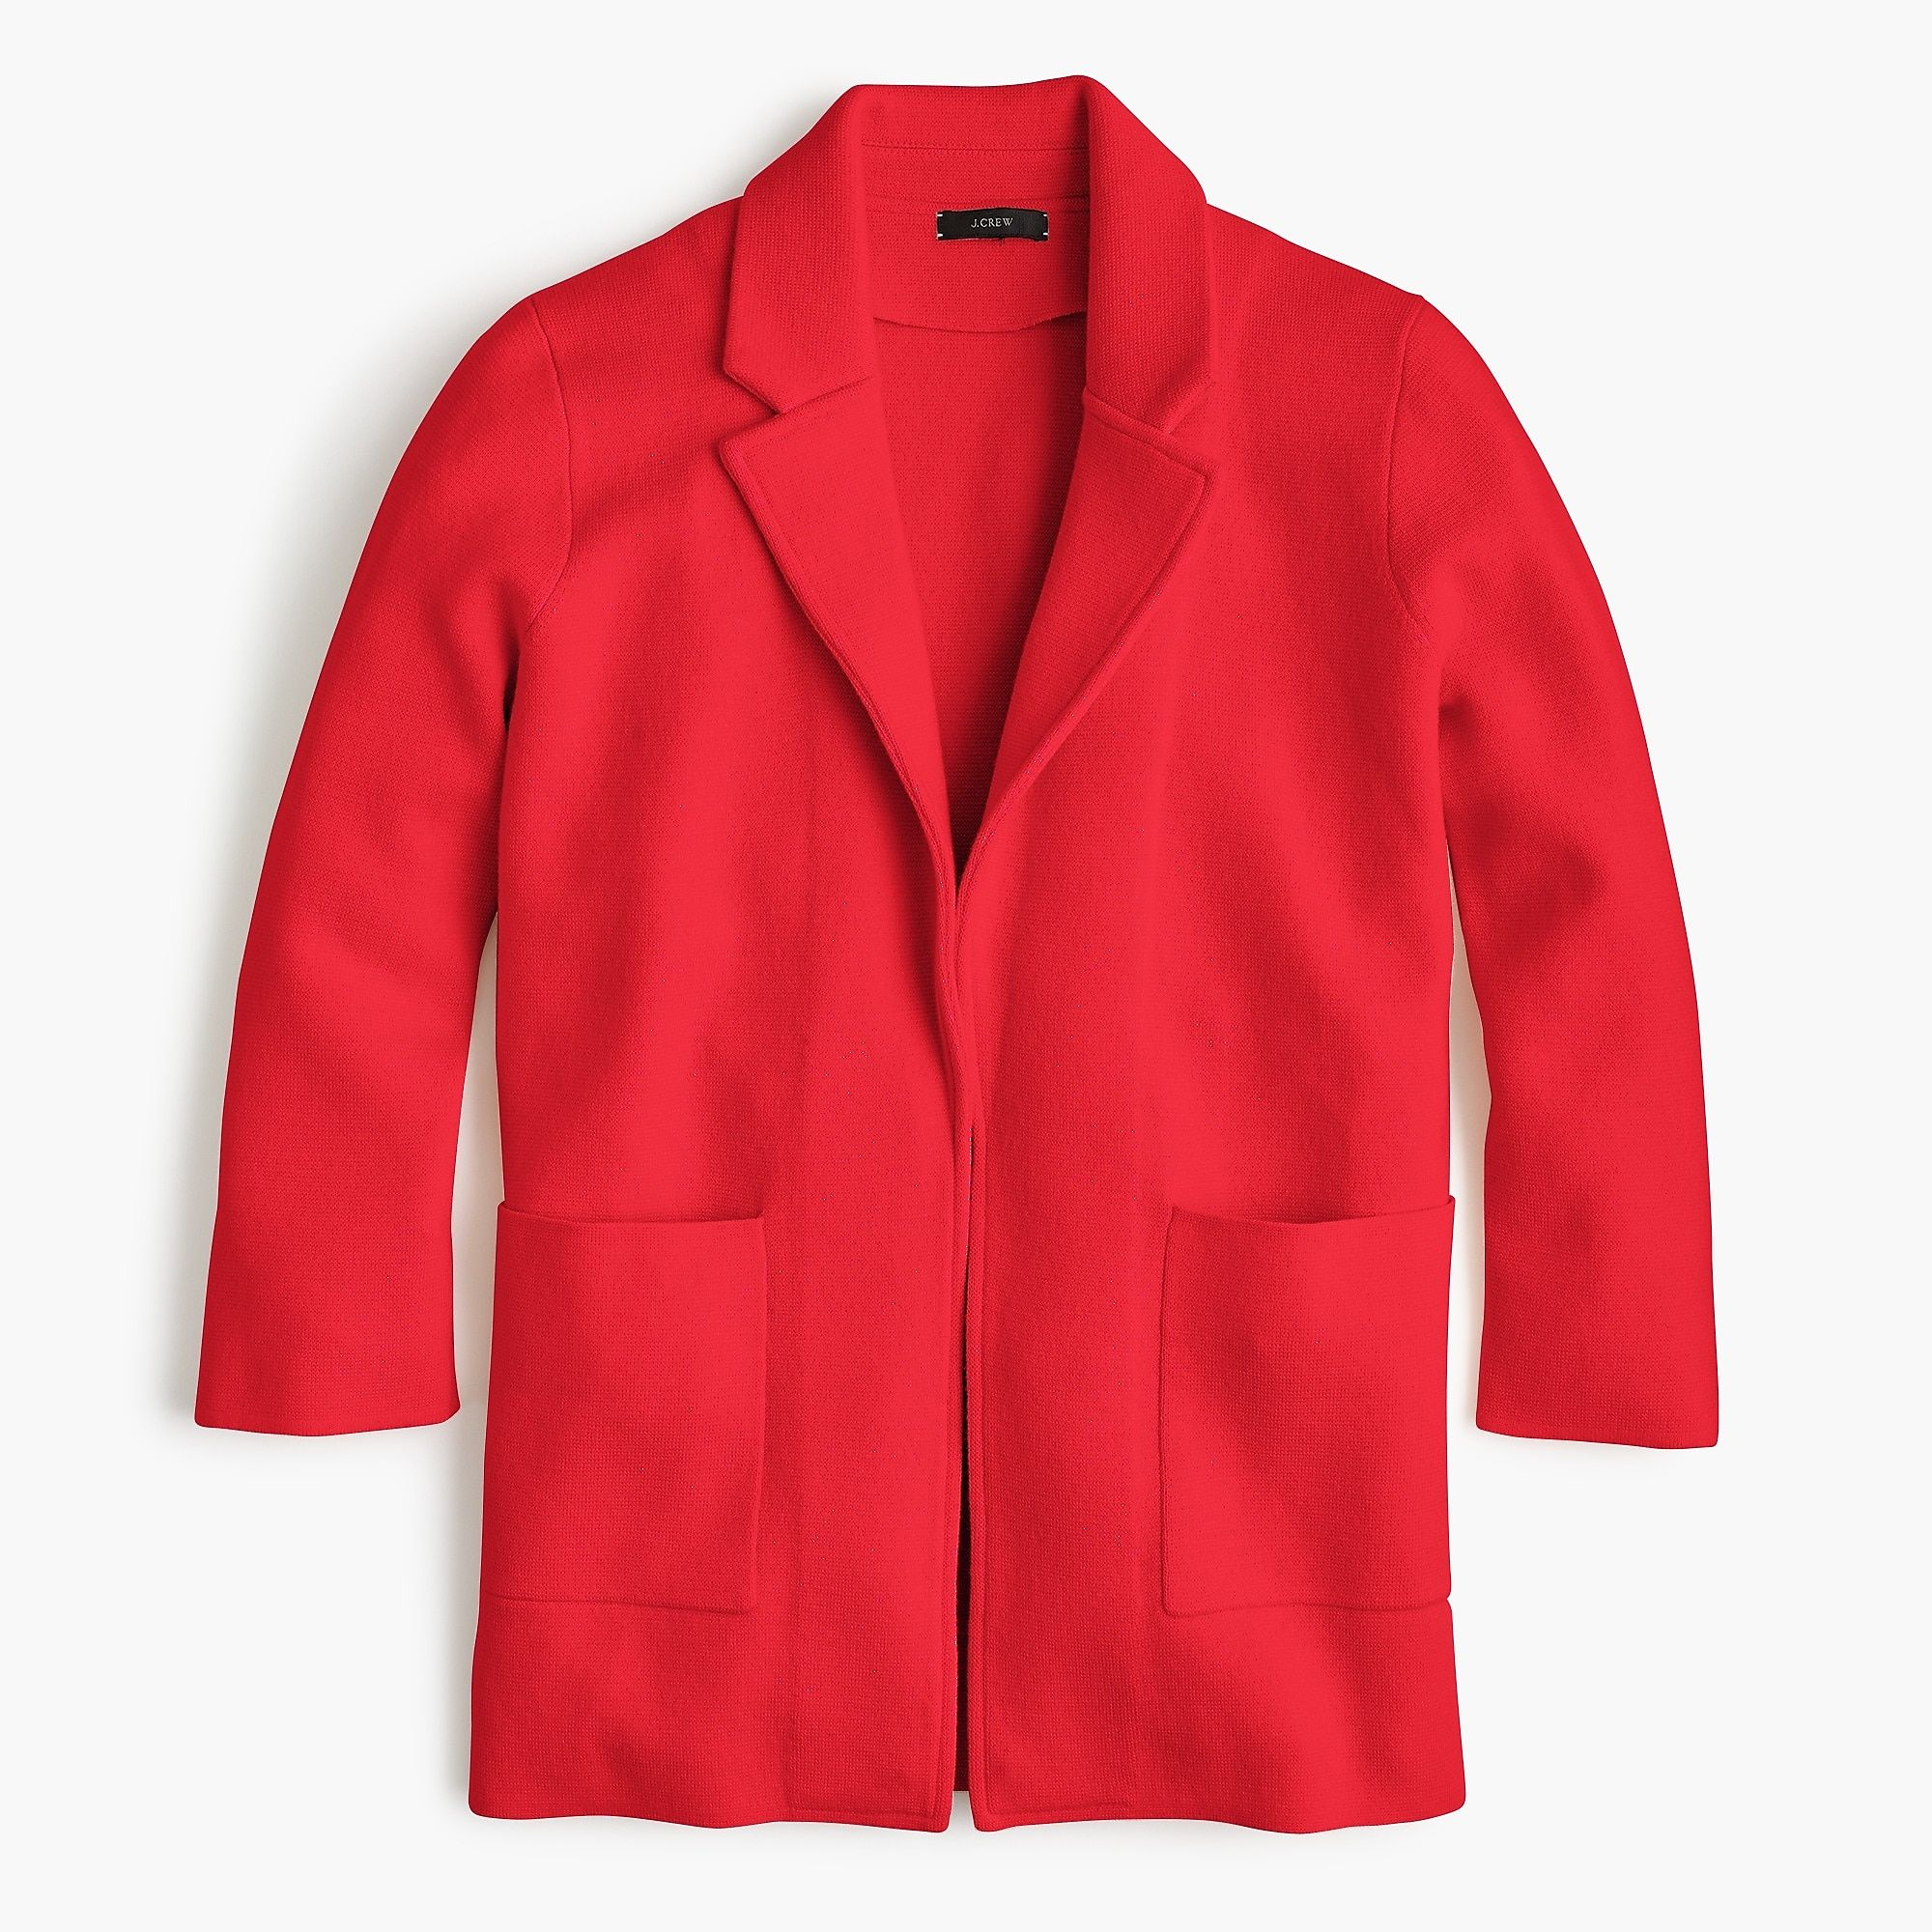 Shop The Womens New Lightweight Sweater Blazer At Jcrew And See